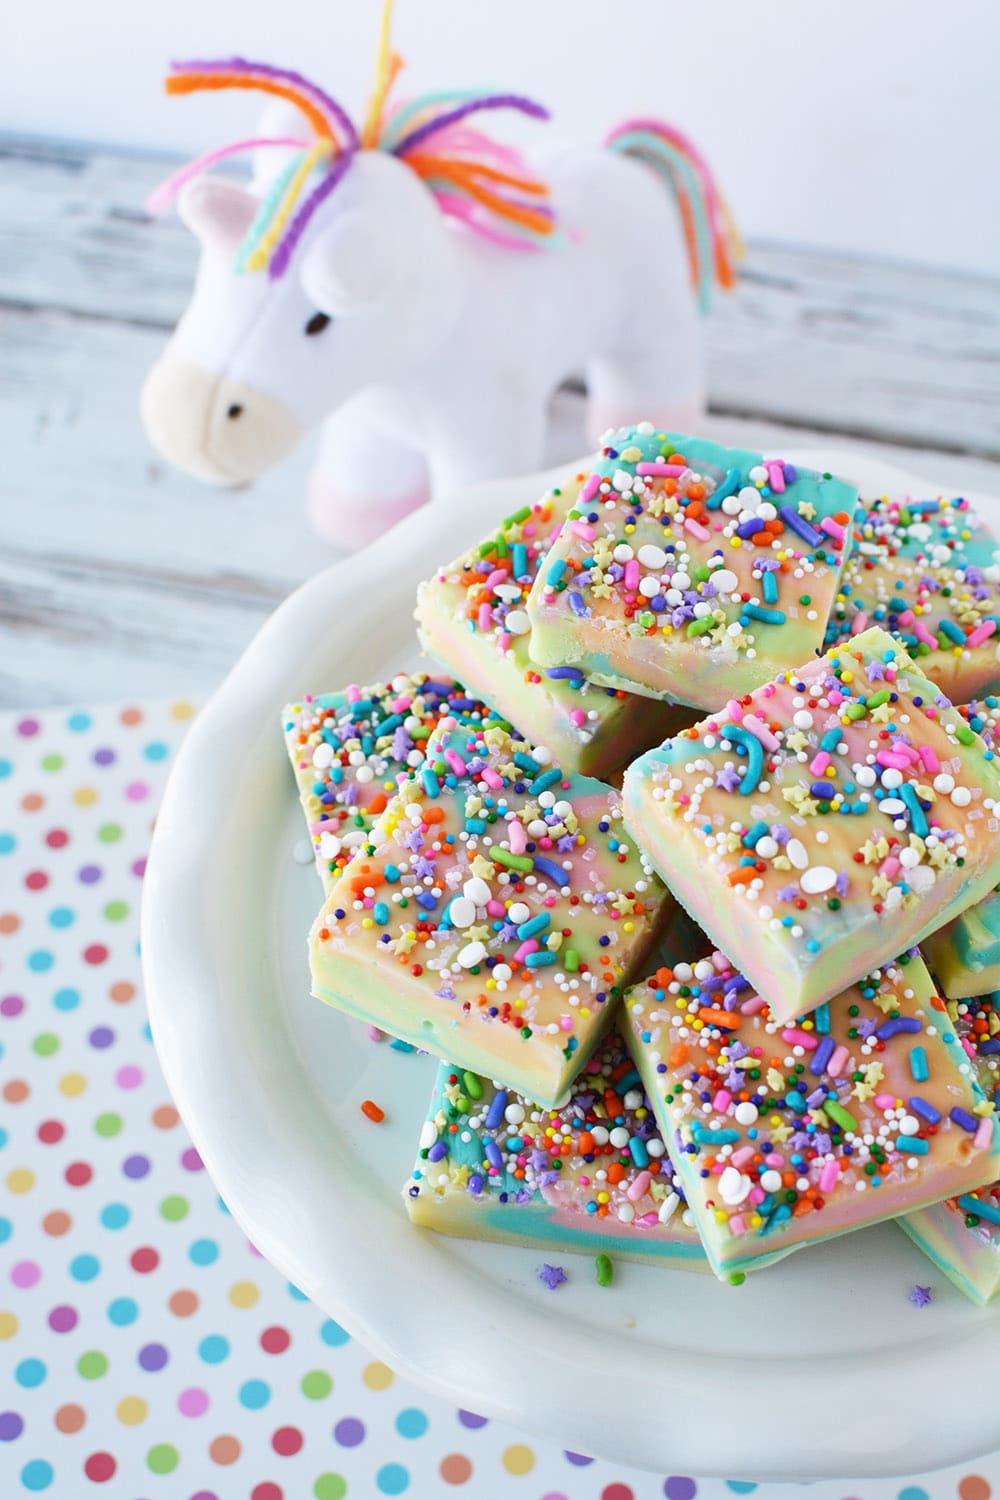 Unicorn fudge on a plate with a unicorn plush toy on the table